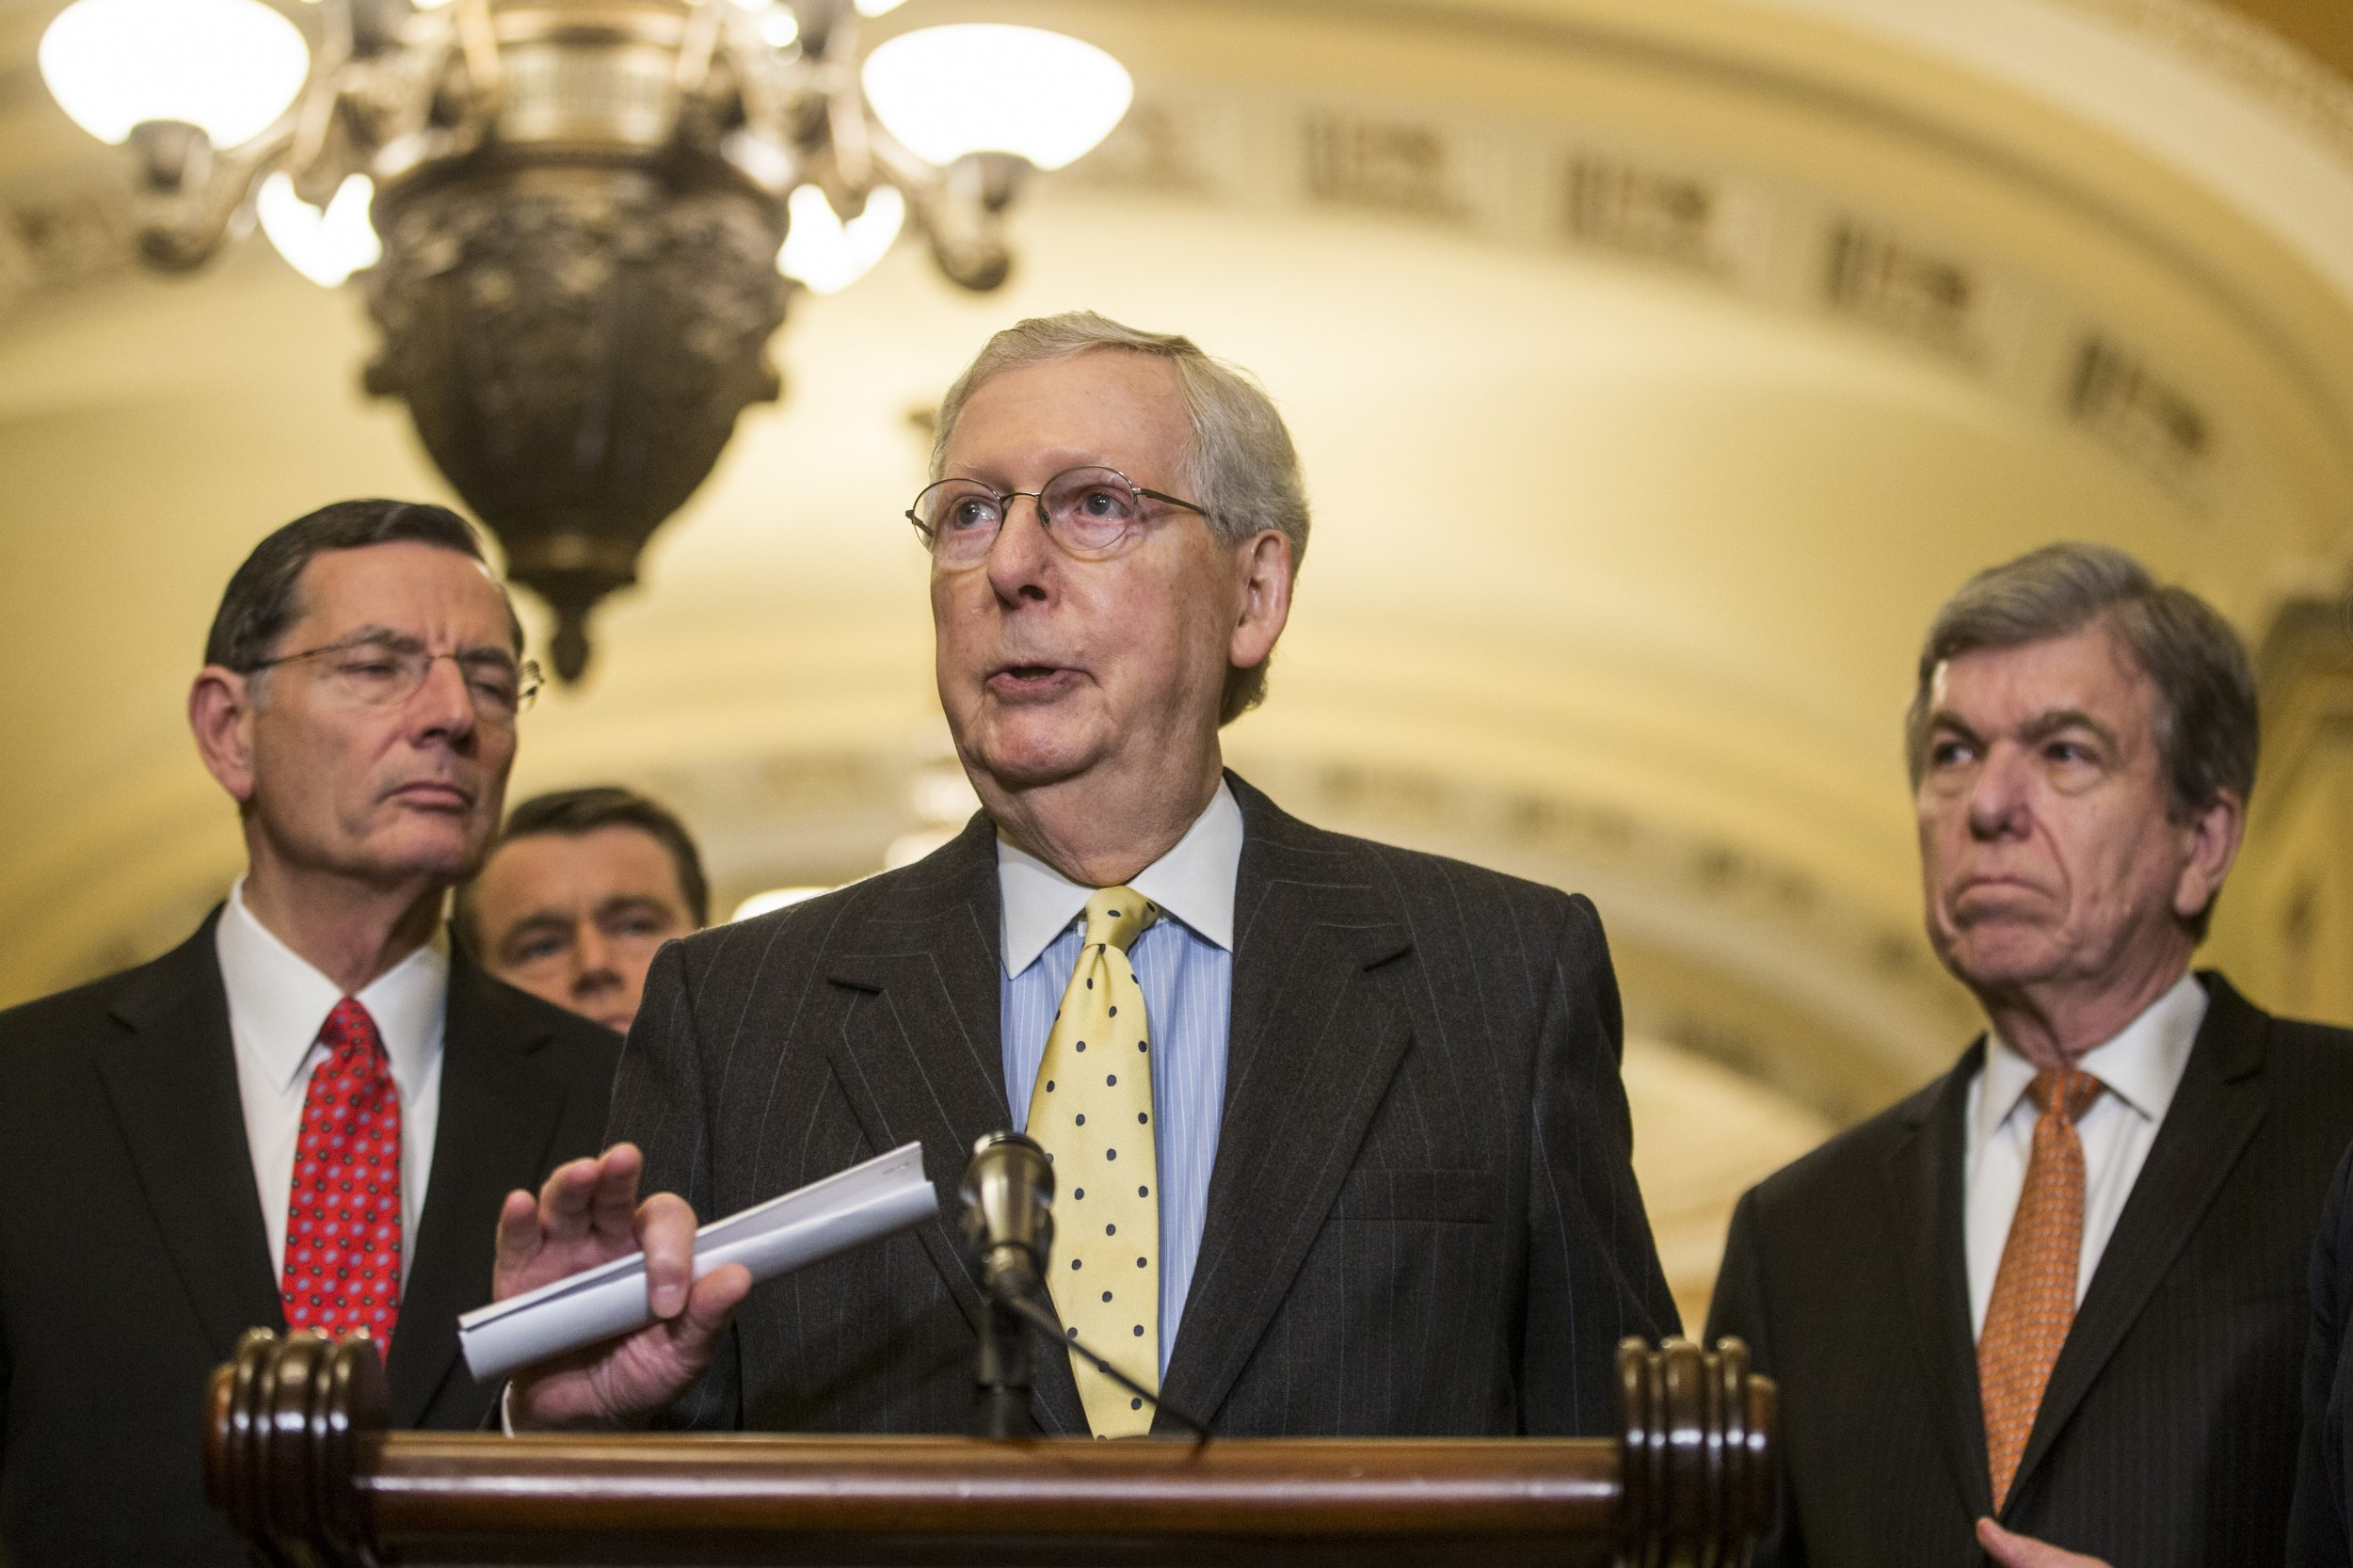 Mitch McConnell, health care, Affordable Care Act